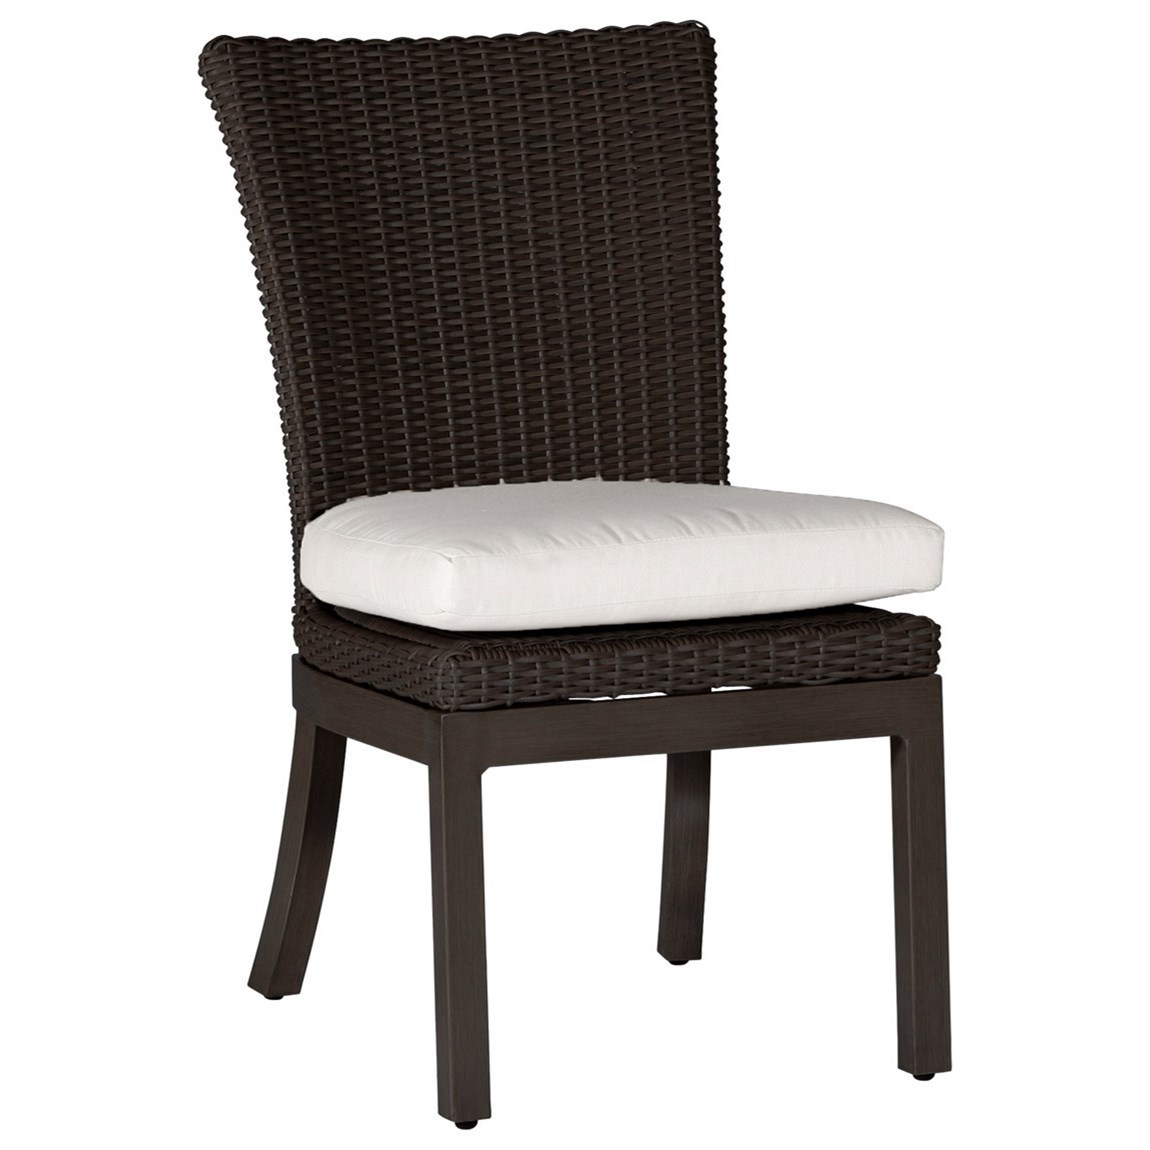 Rustic Rustic Side Chair by Summer Classics at Esprit Decor Home Furnishings